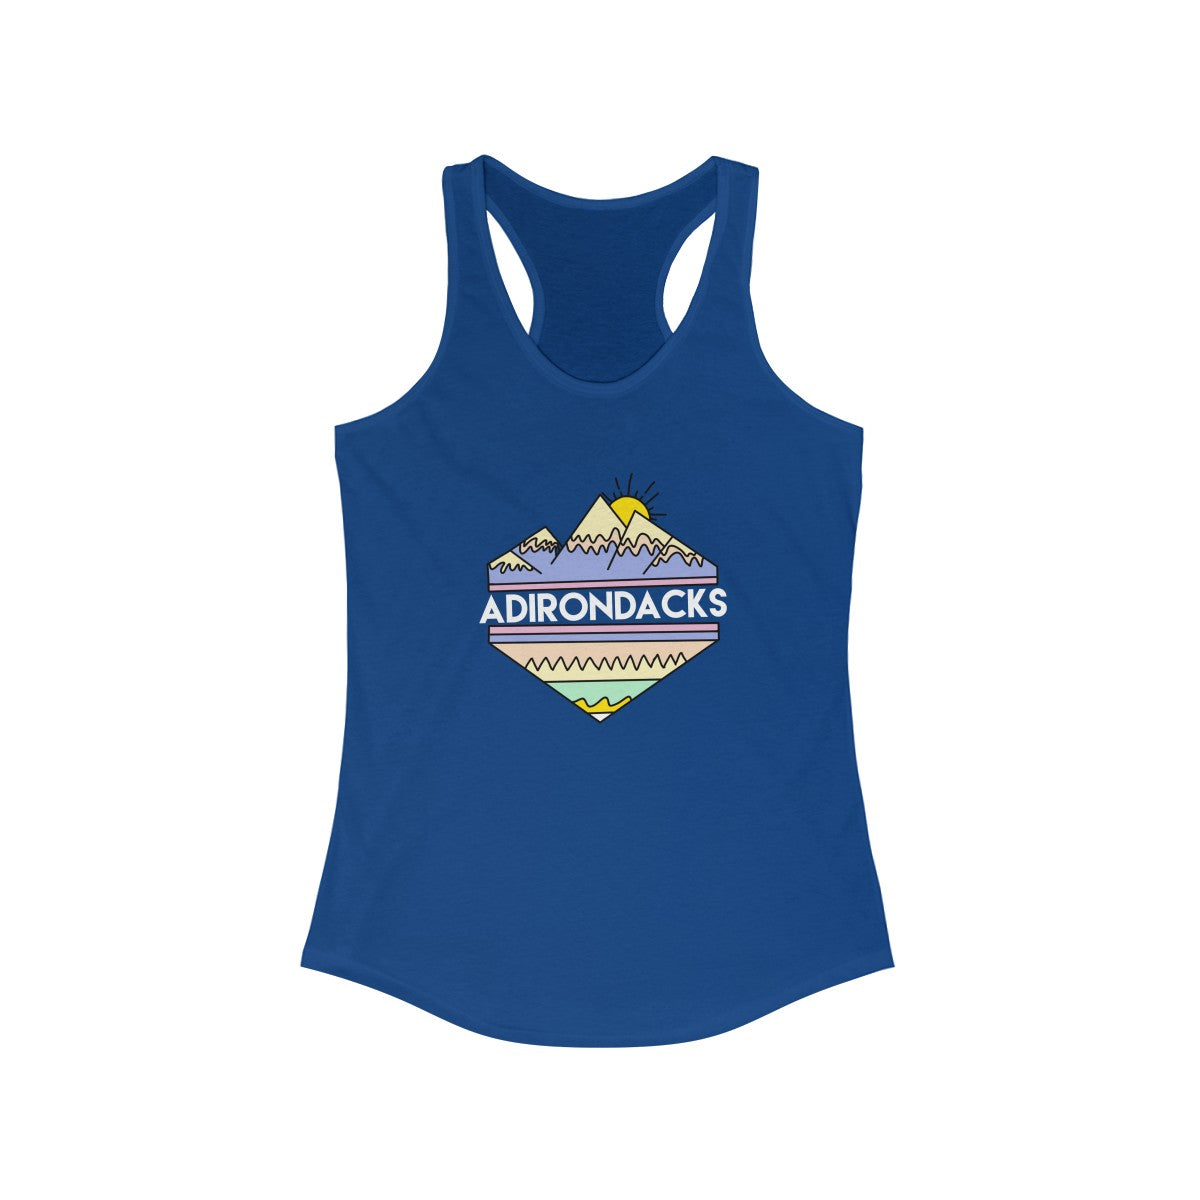 Adirondacks Tribal Women's Racerback Tank - Adirondack Apparel